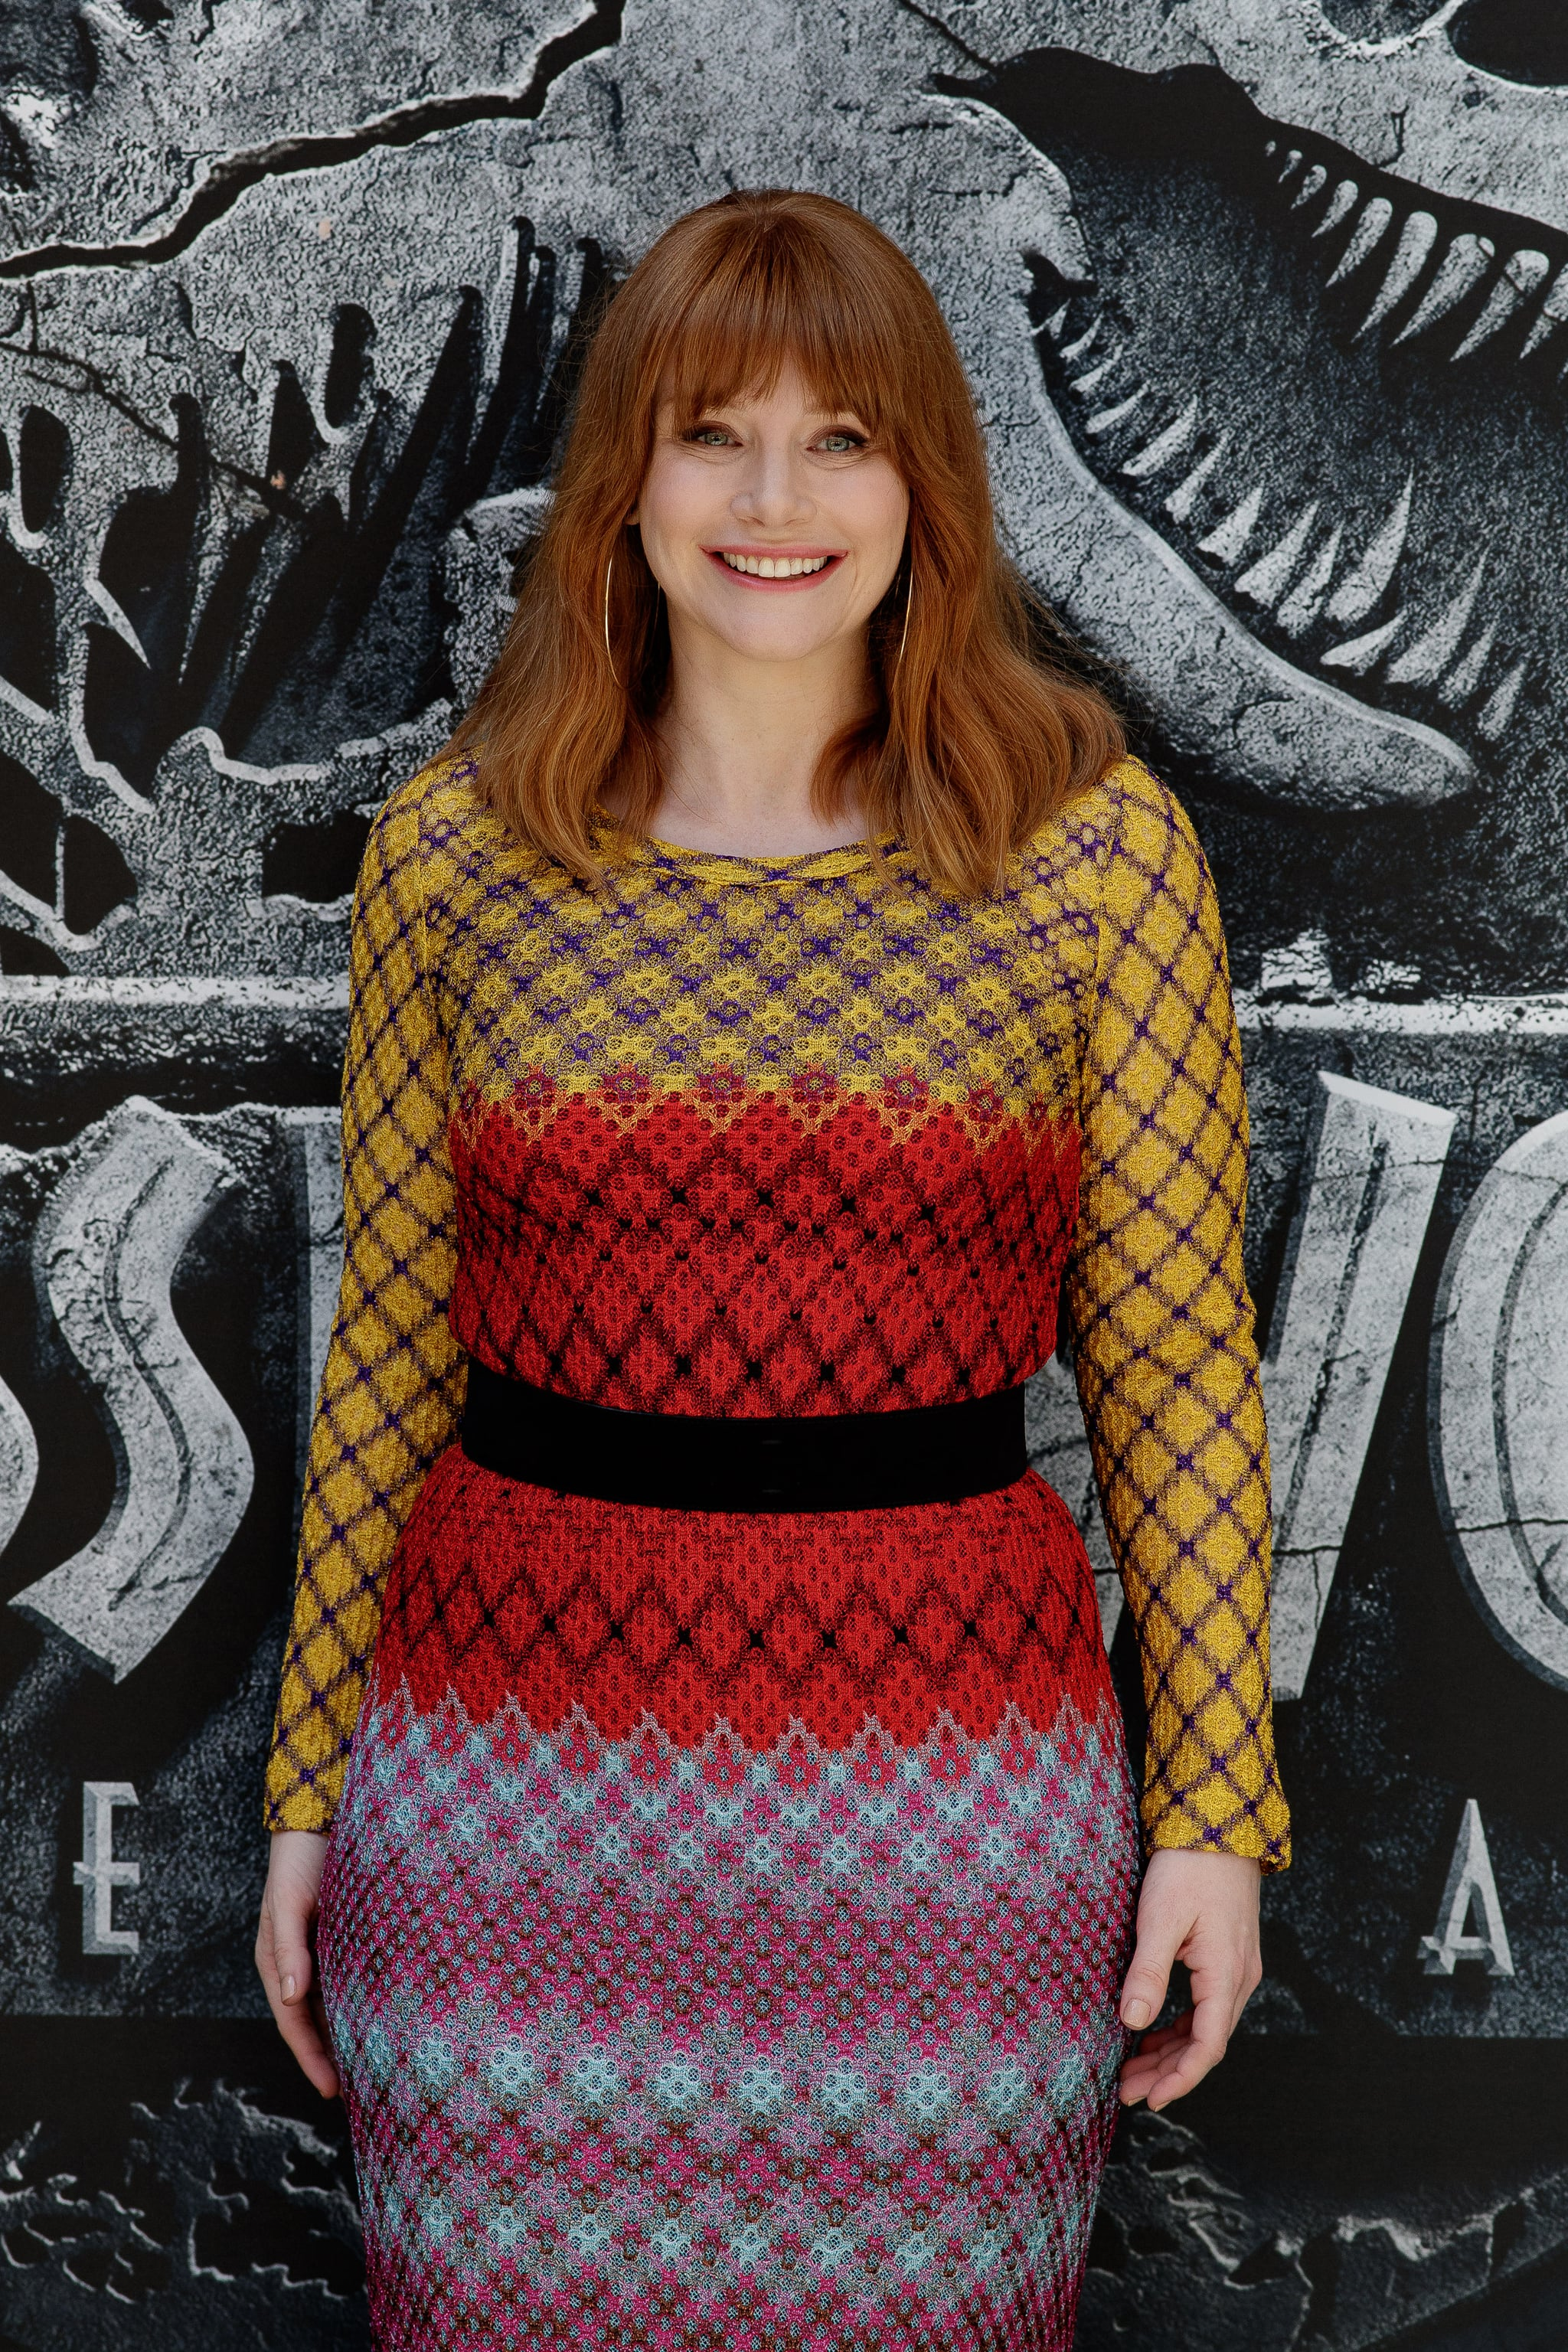 MADRID, SPAIN - MAY 22:  Actress Bryce Dallas Howard attends the 'Jurassic World: Fallen Kingdom'  ('Jurassic World: El Reino Caido') photocall at Villamagna hotel on May 22, 2018 in Madrid, Spain.  (Photo by Eduardo Parra/WireImage)